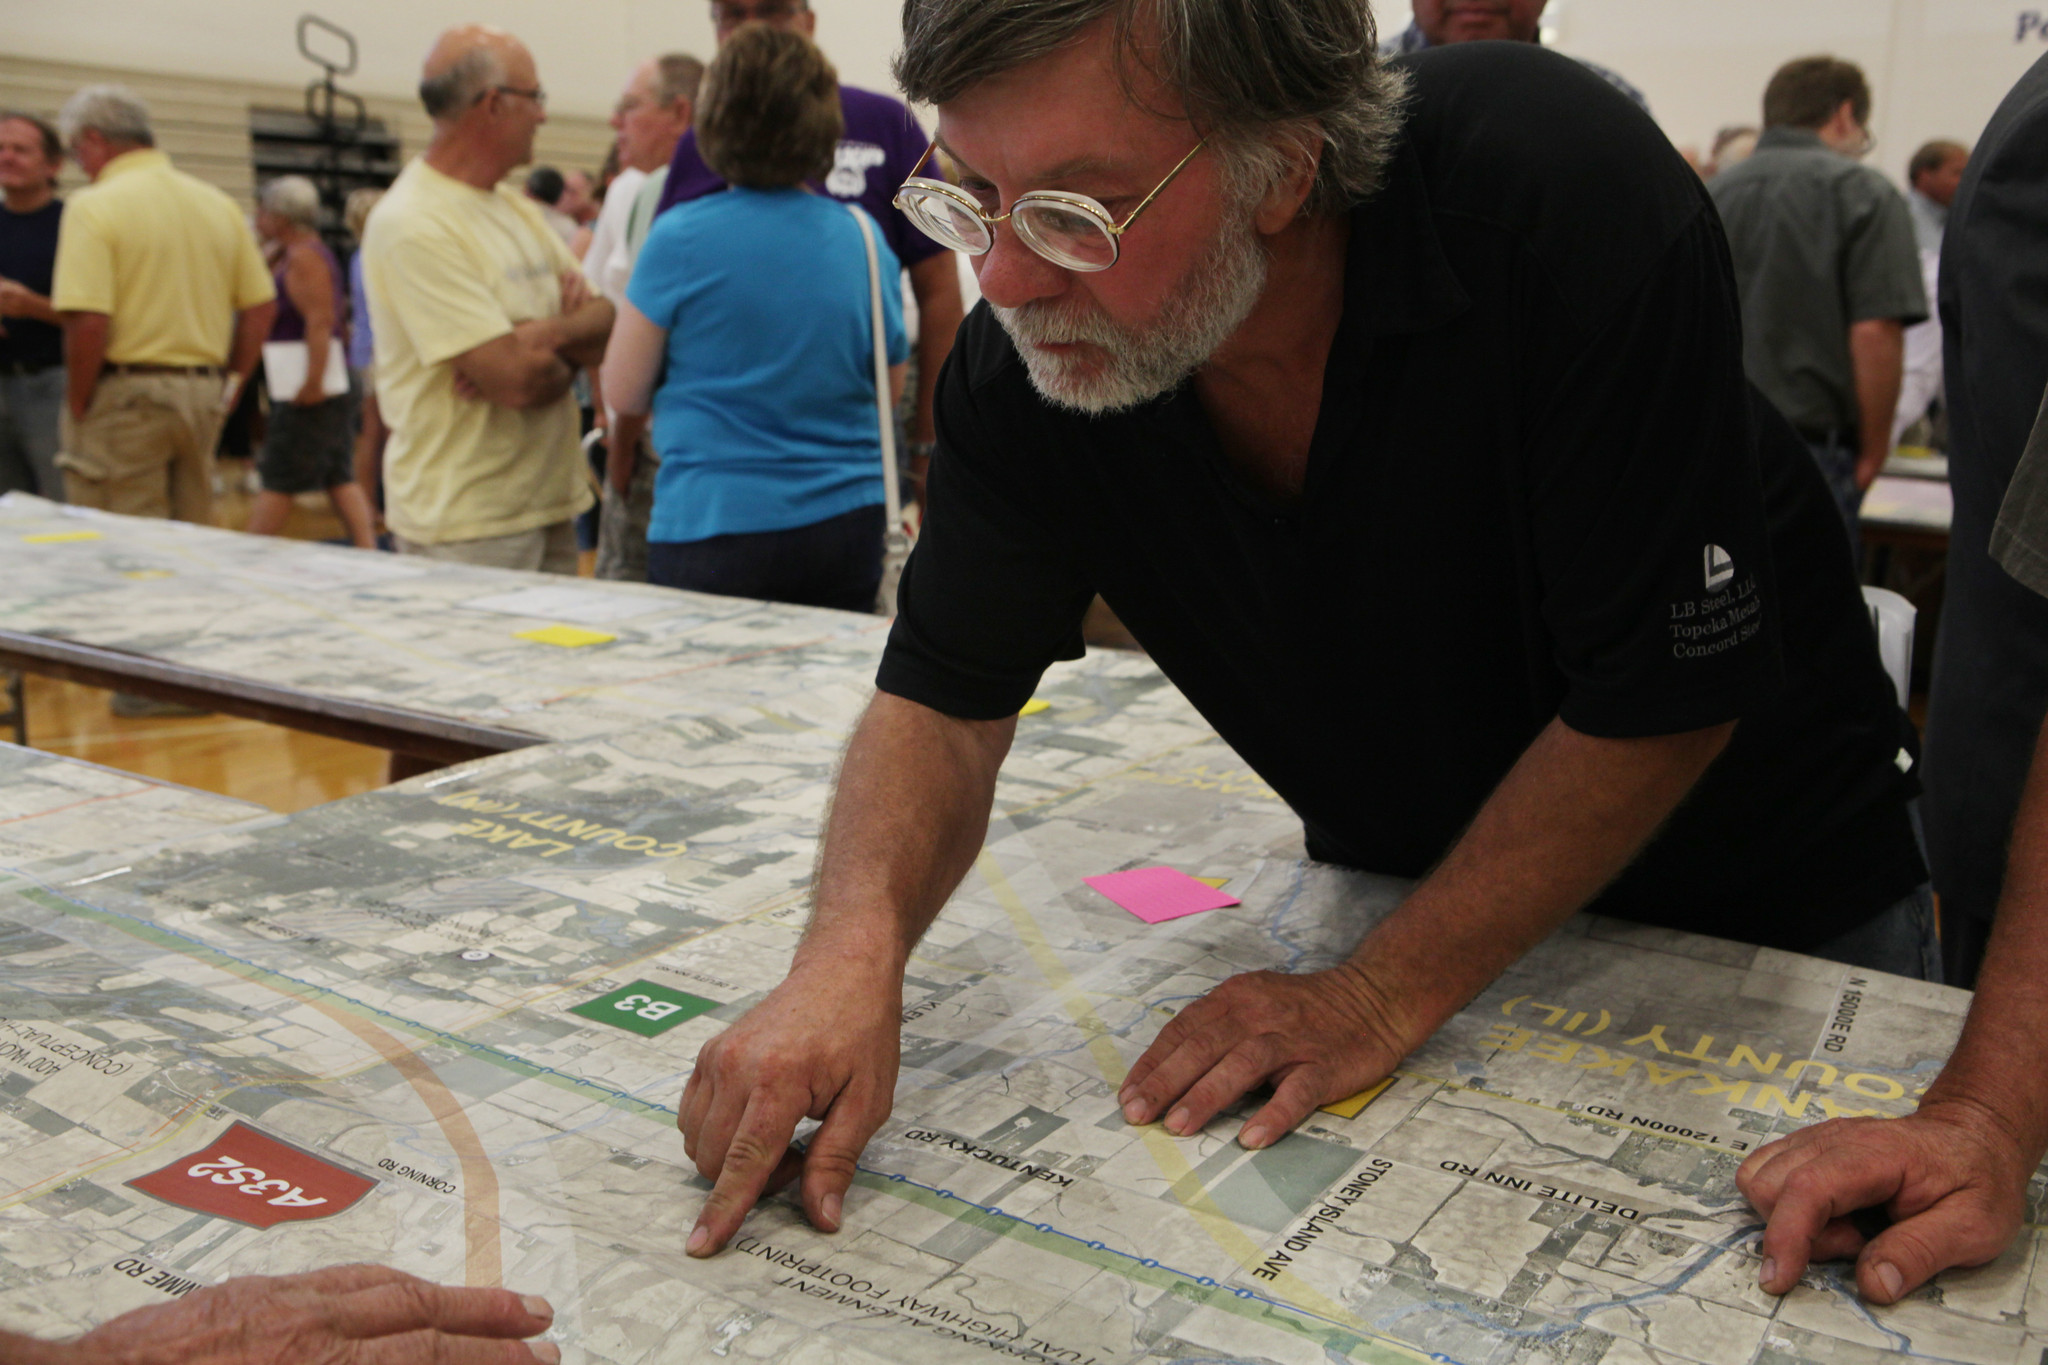 Chris Persch looks at a map outlining part of the environmental impact statement for the proposed Illiana toll road at a public meeting at Peotone High School in Peotone on July 31.